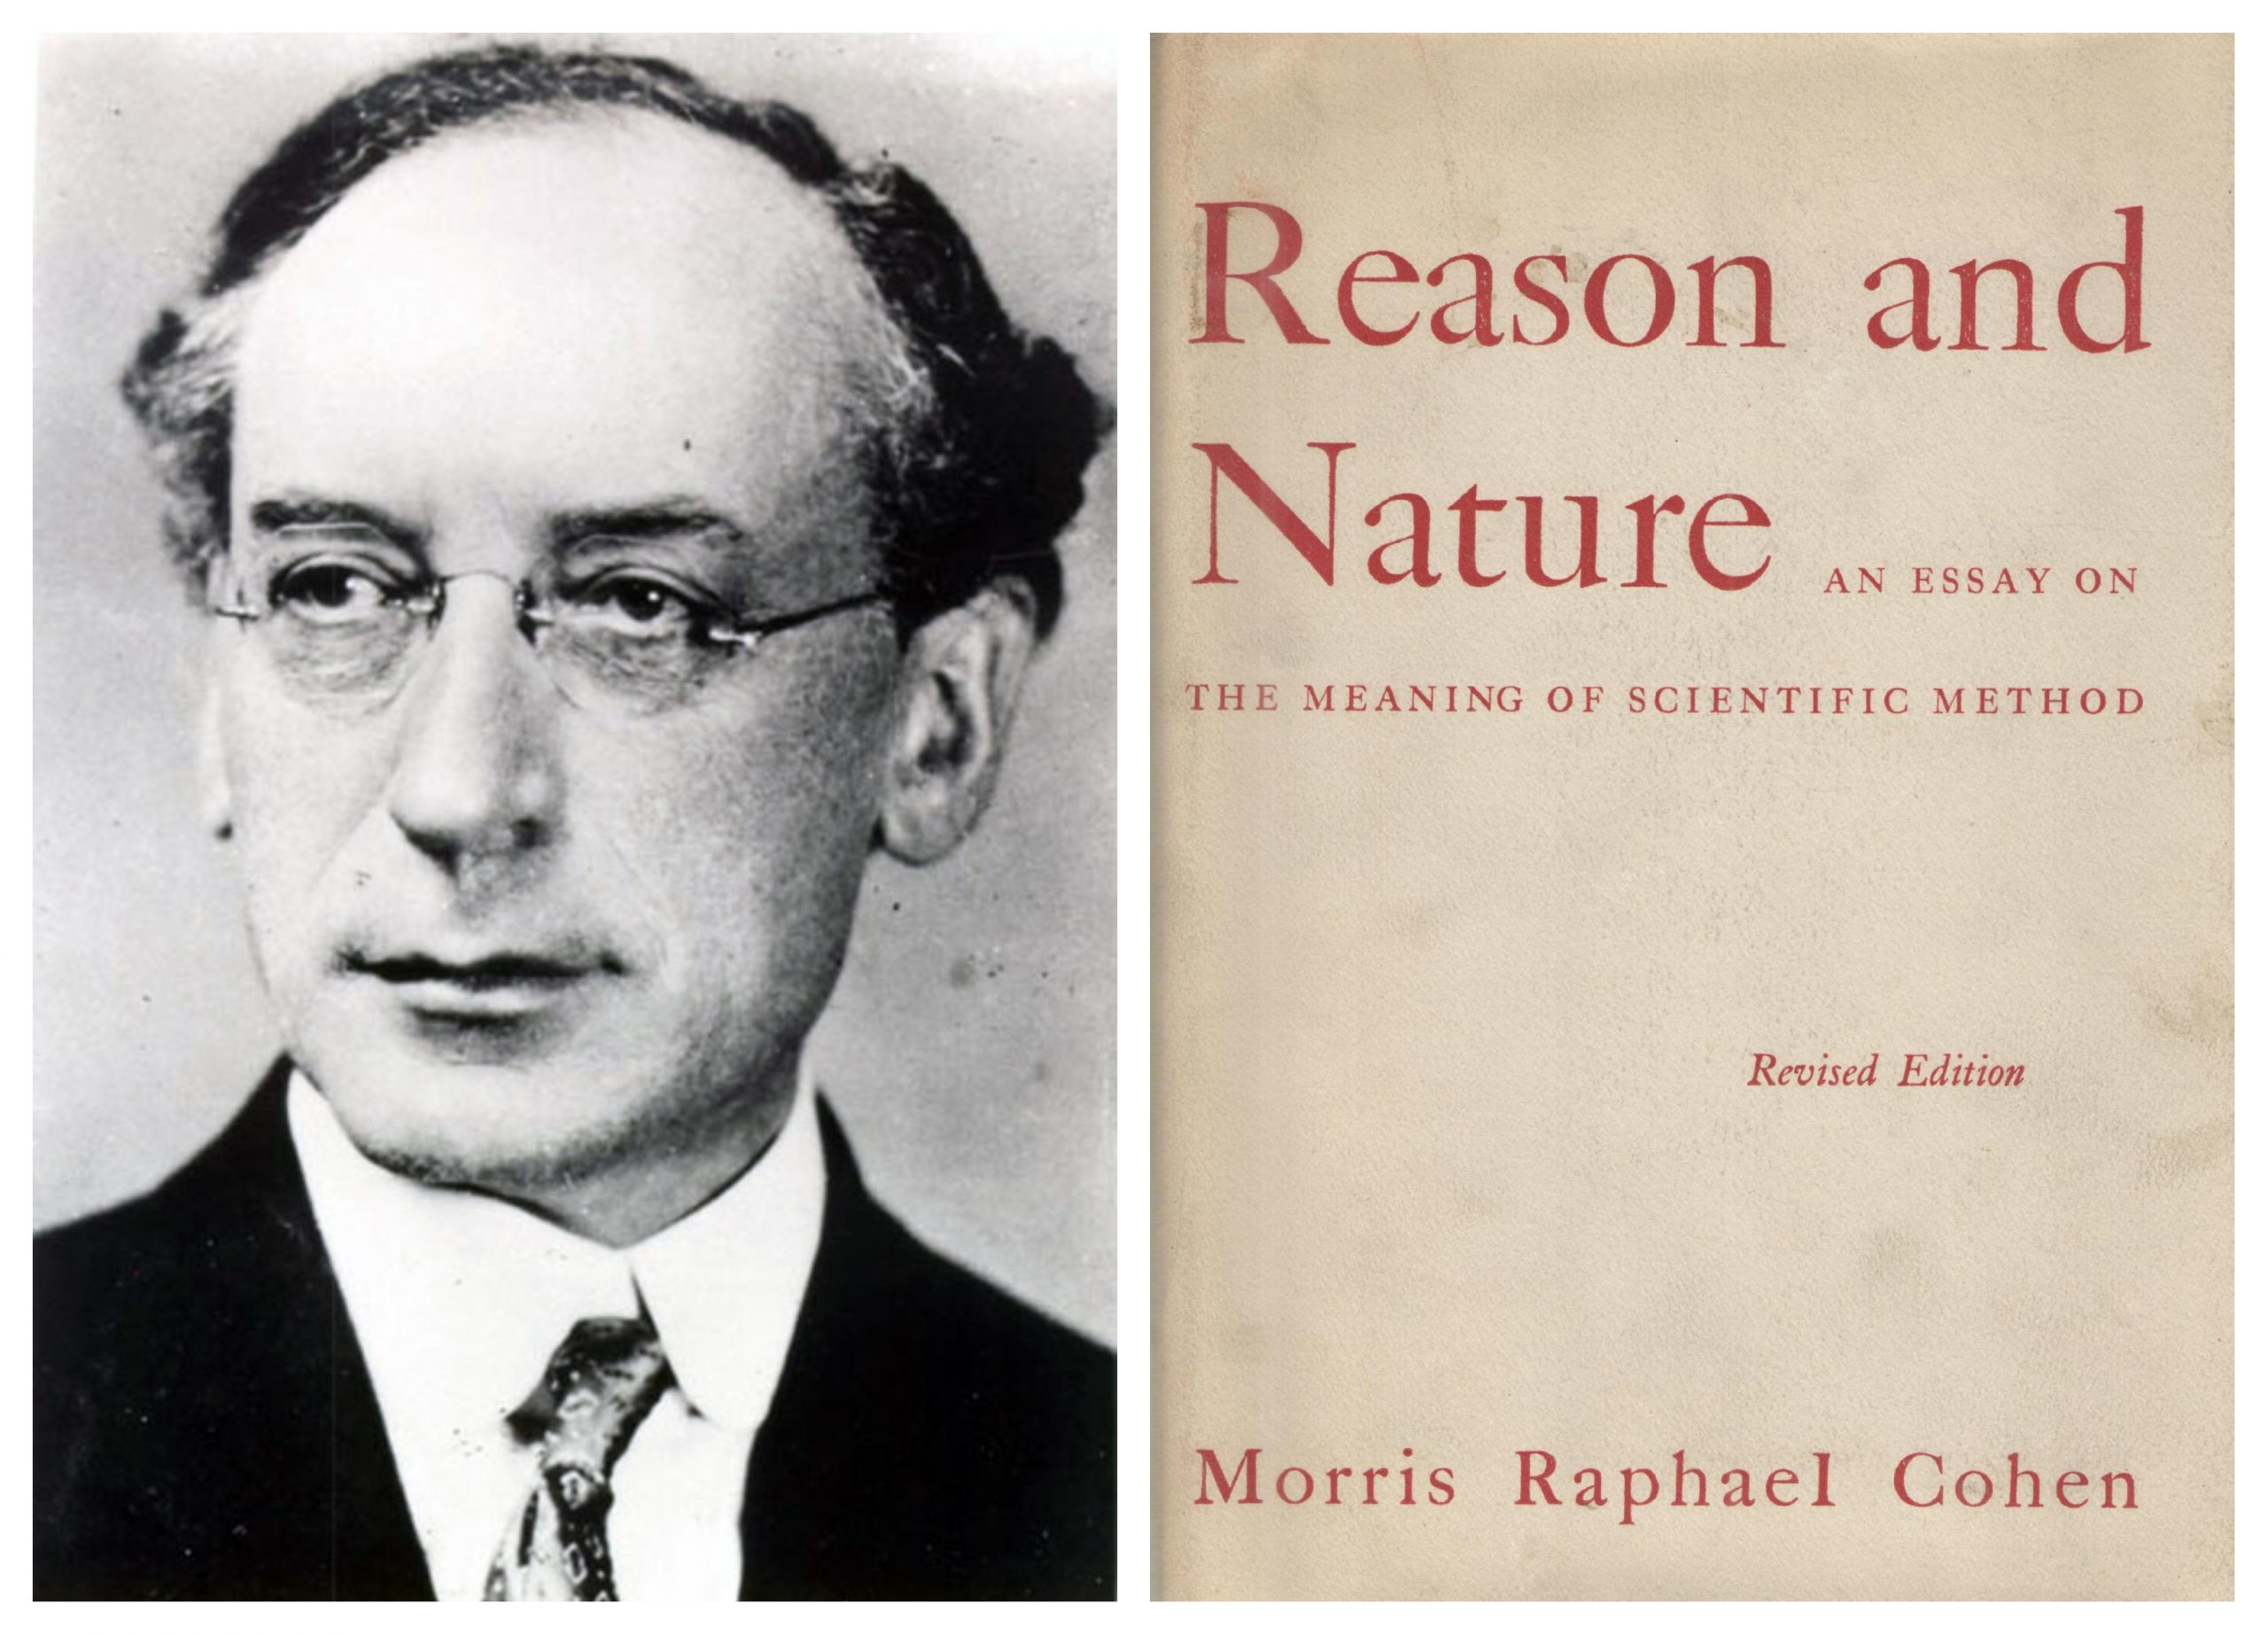 Morris R. Cohen - Reason and Nature